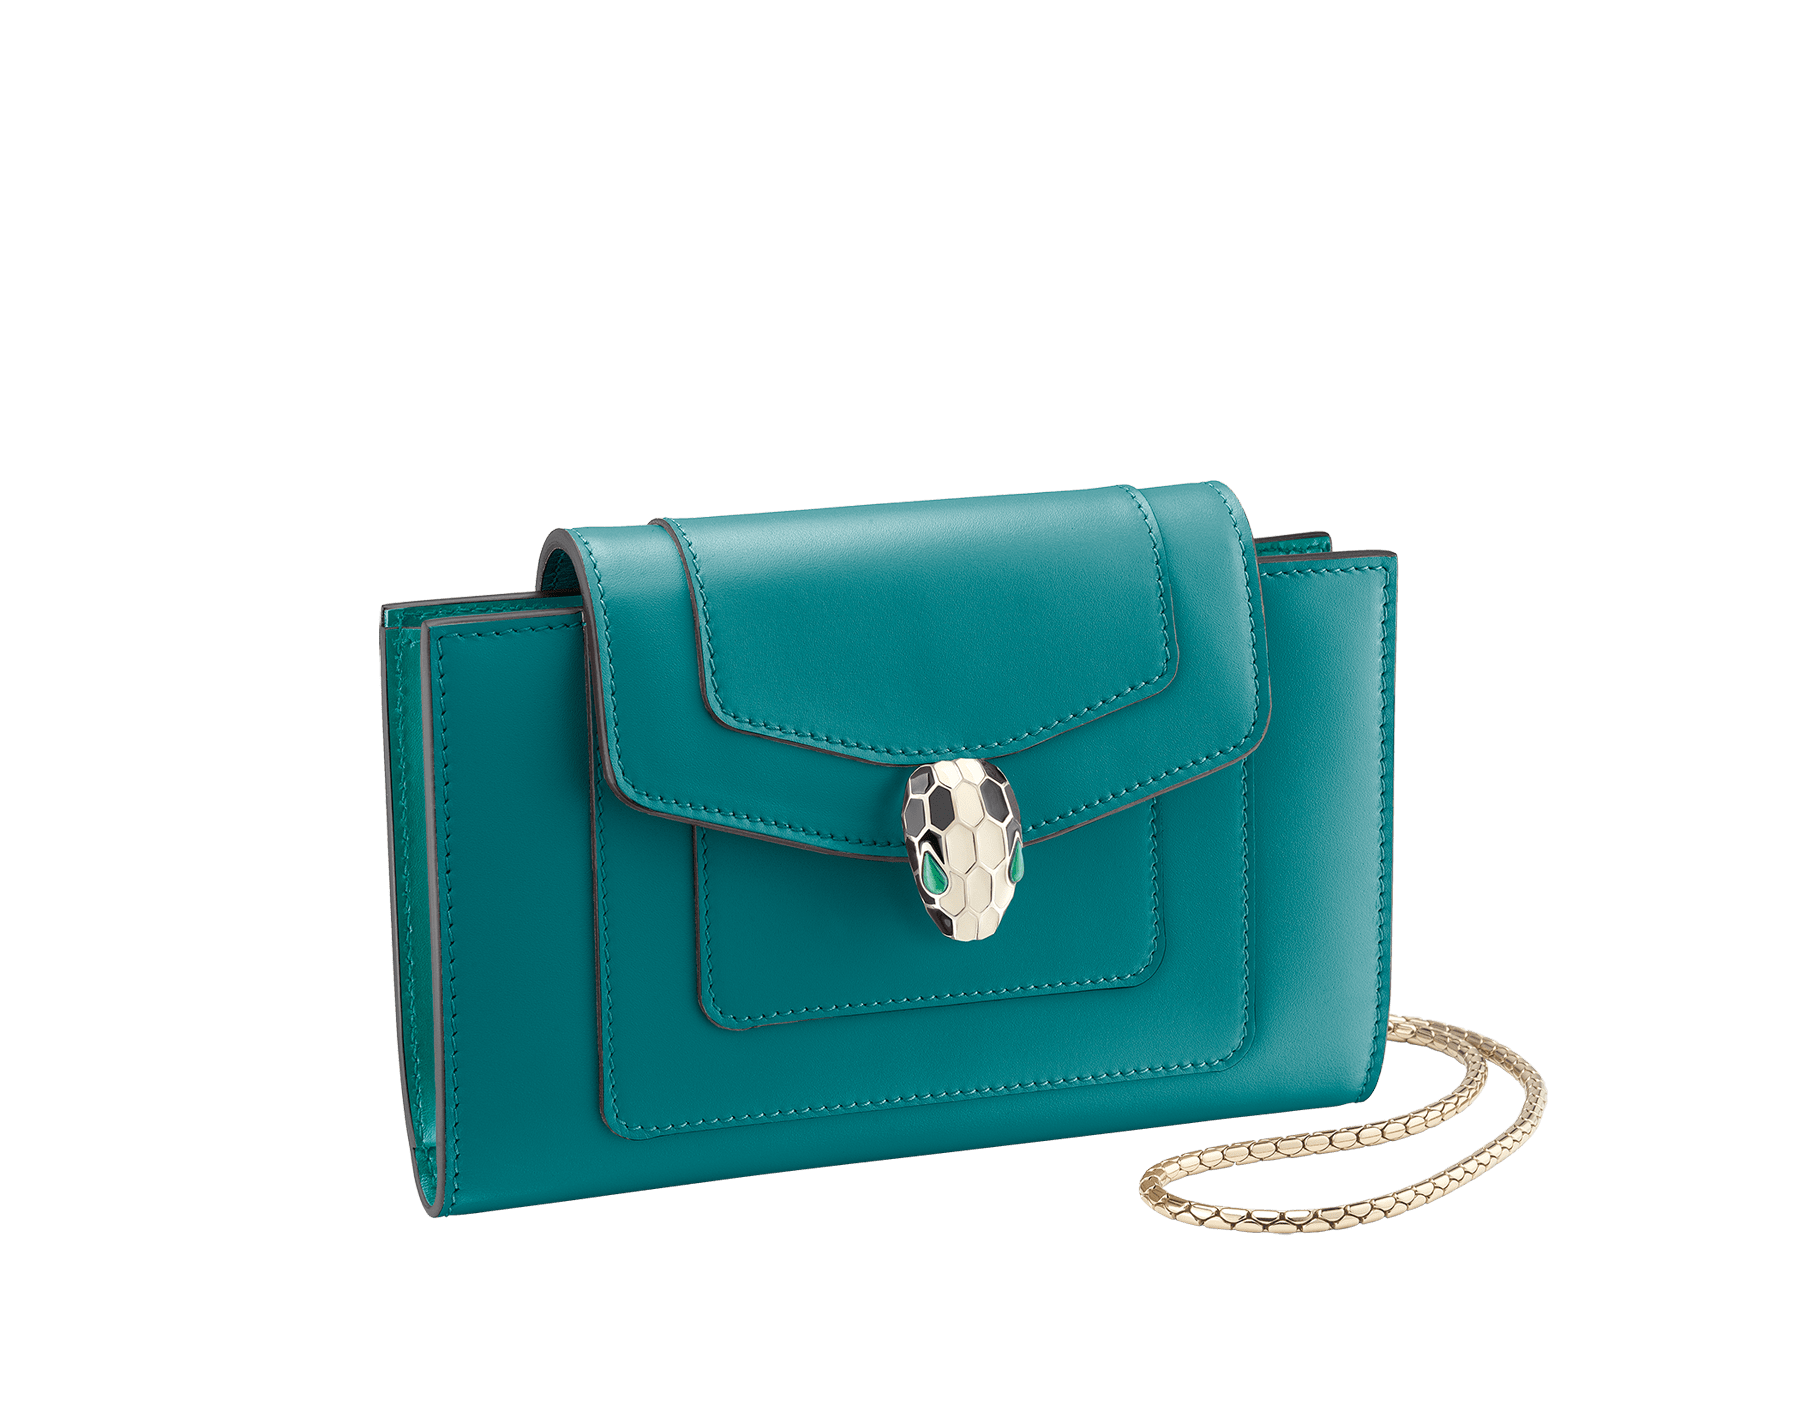 Techno-hybrid Serpenti Forever in deep jade calf leather, with tropical tourquoise calf leather lining. Brass light gold plated Serpenti head stud closure in black and white enamel, with green enamel eyes. 288026 image 1